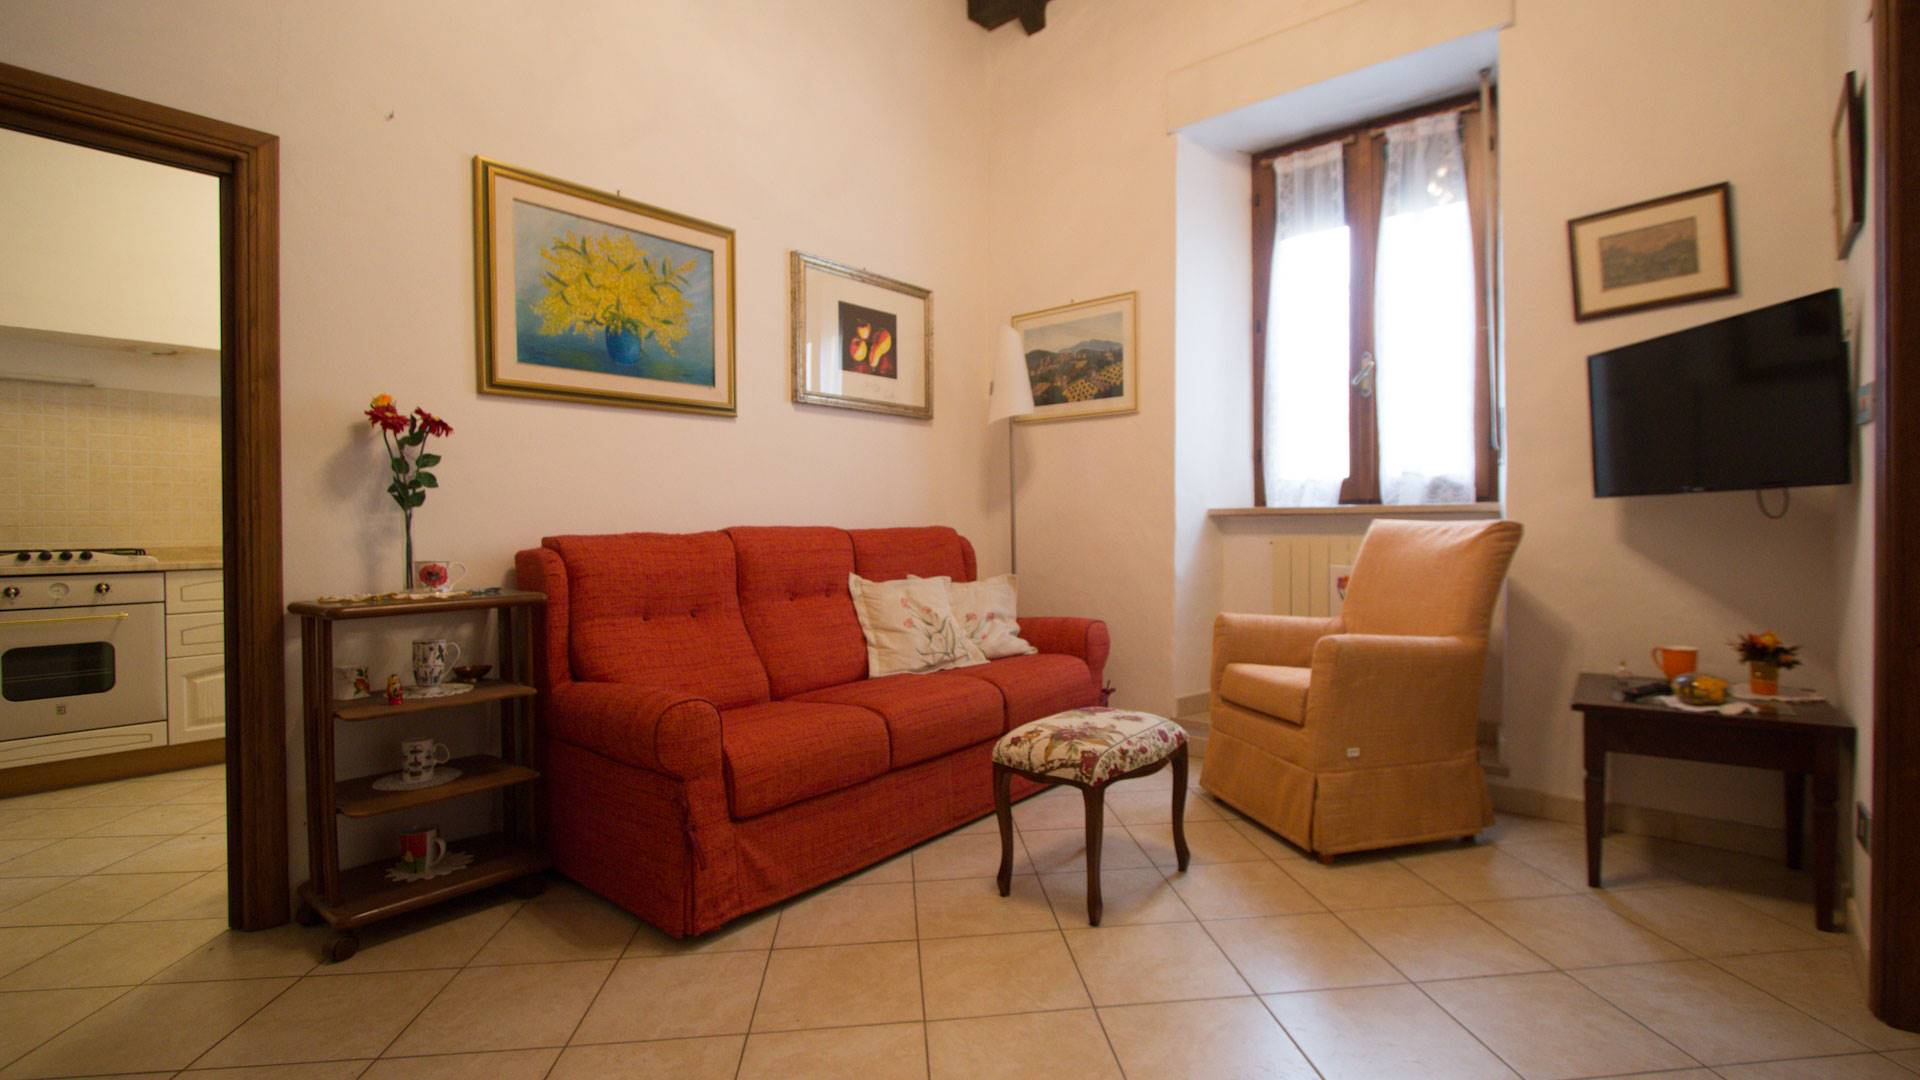 MONTALCINO, Apartment for sale of 128 Sq. mt., Habitable, Heating Individual heating system, Energetic class: G, Epi: 175 kwh/m2 year, placed at Raised on 2, composed by: 5 Rooms, Little kitchen, , 3